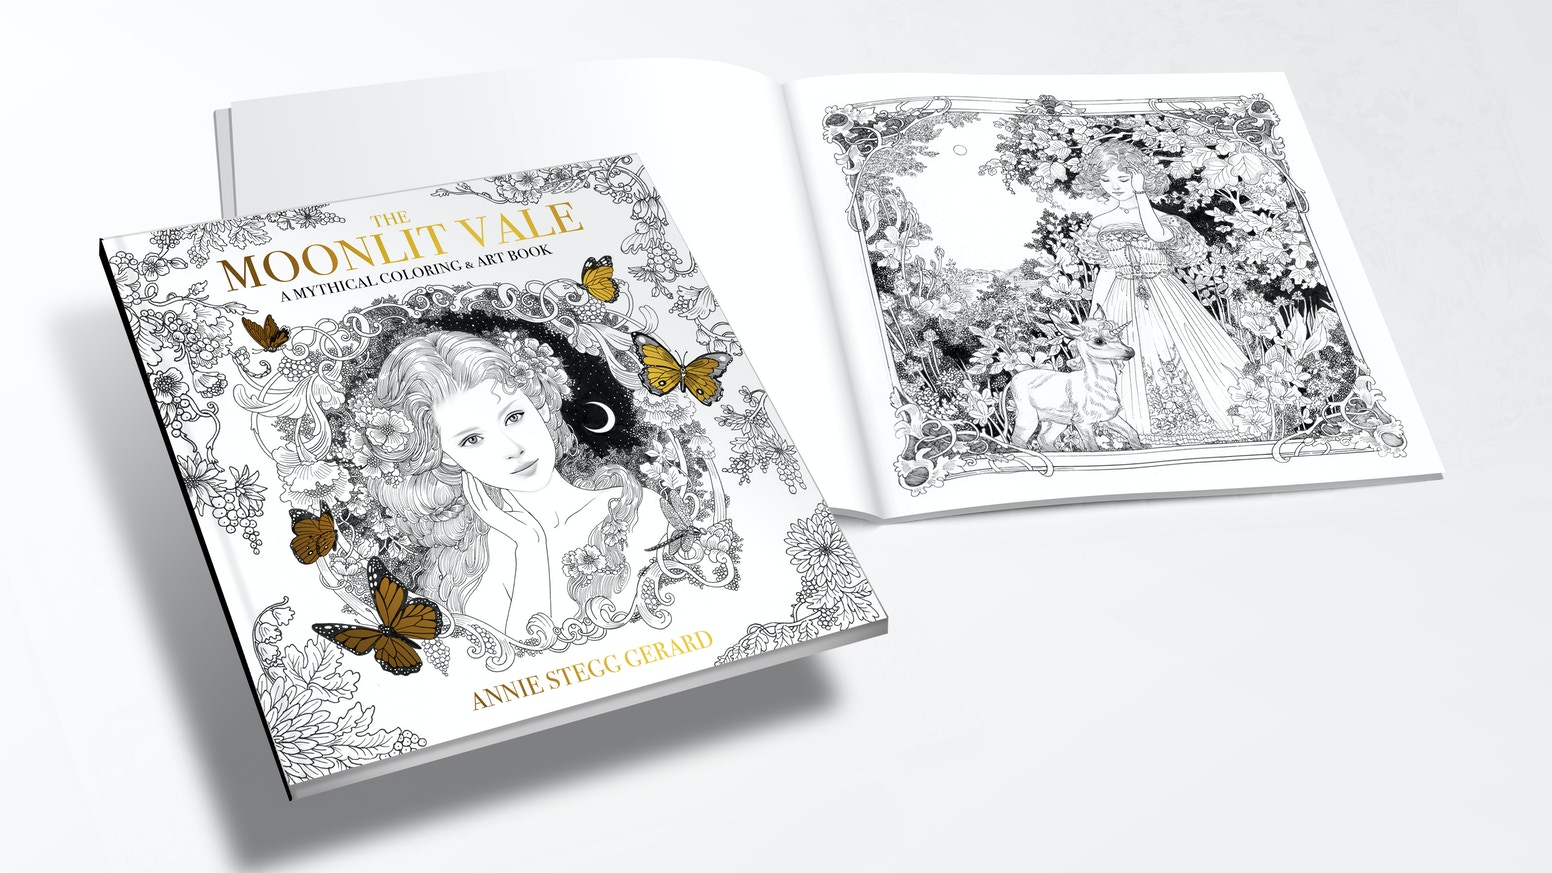 Relax And Share In The Meditative Quality Of Art Through This Enchanted Coloring Book